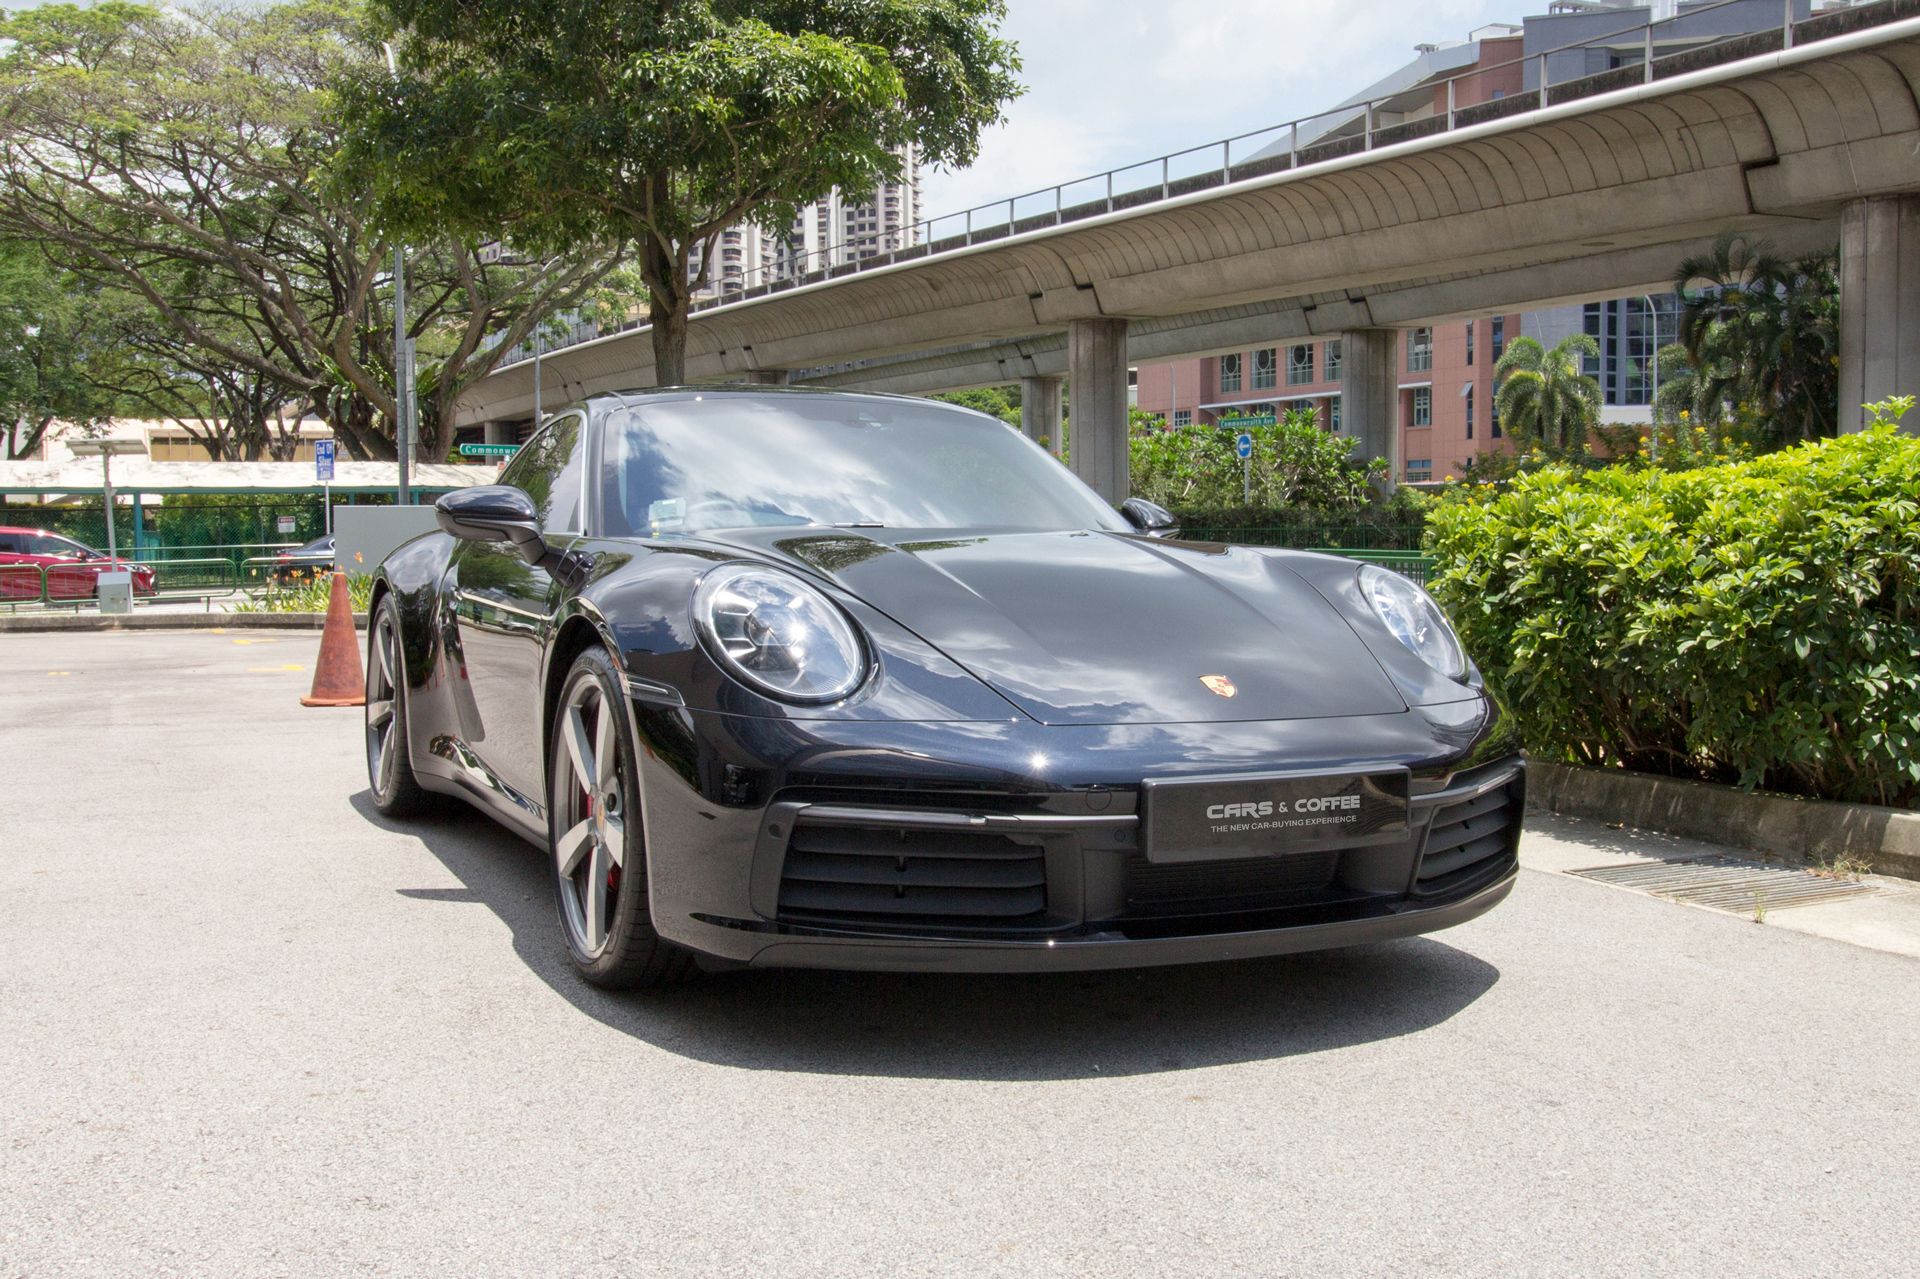 Certified Pre-Owned Porsche 911 Carrera S PDK | Cars and Coffee Singapore